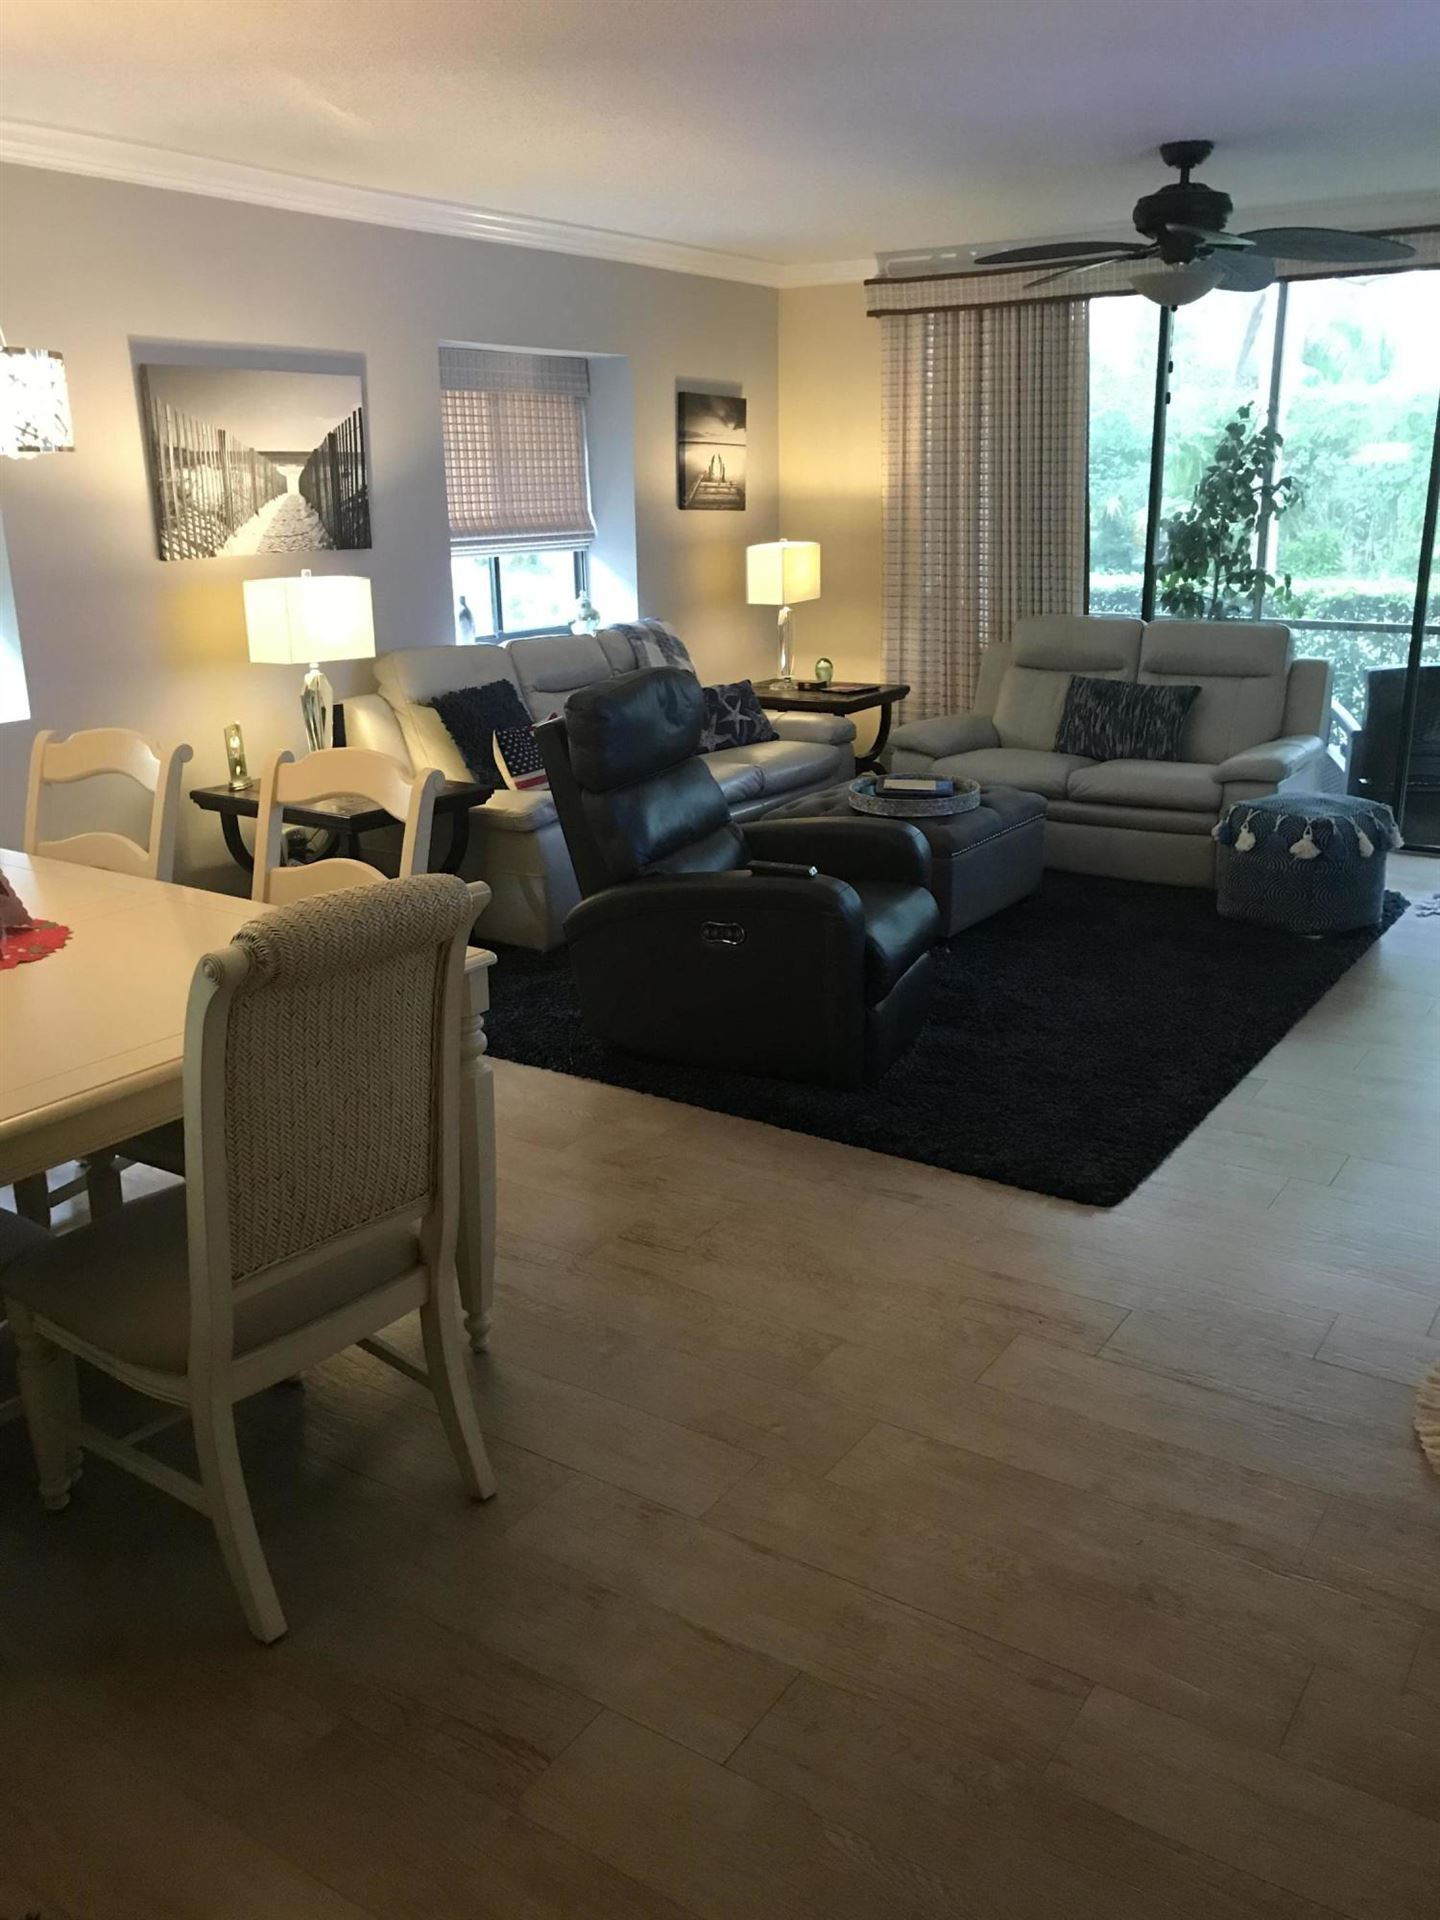 Photo of 1103 Duncan Circle #101, Palm Beach Gardens, FL 33418 (MLS # RX-10687744)